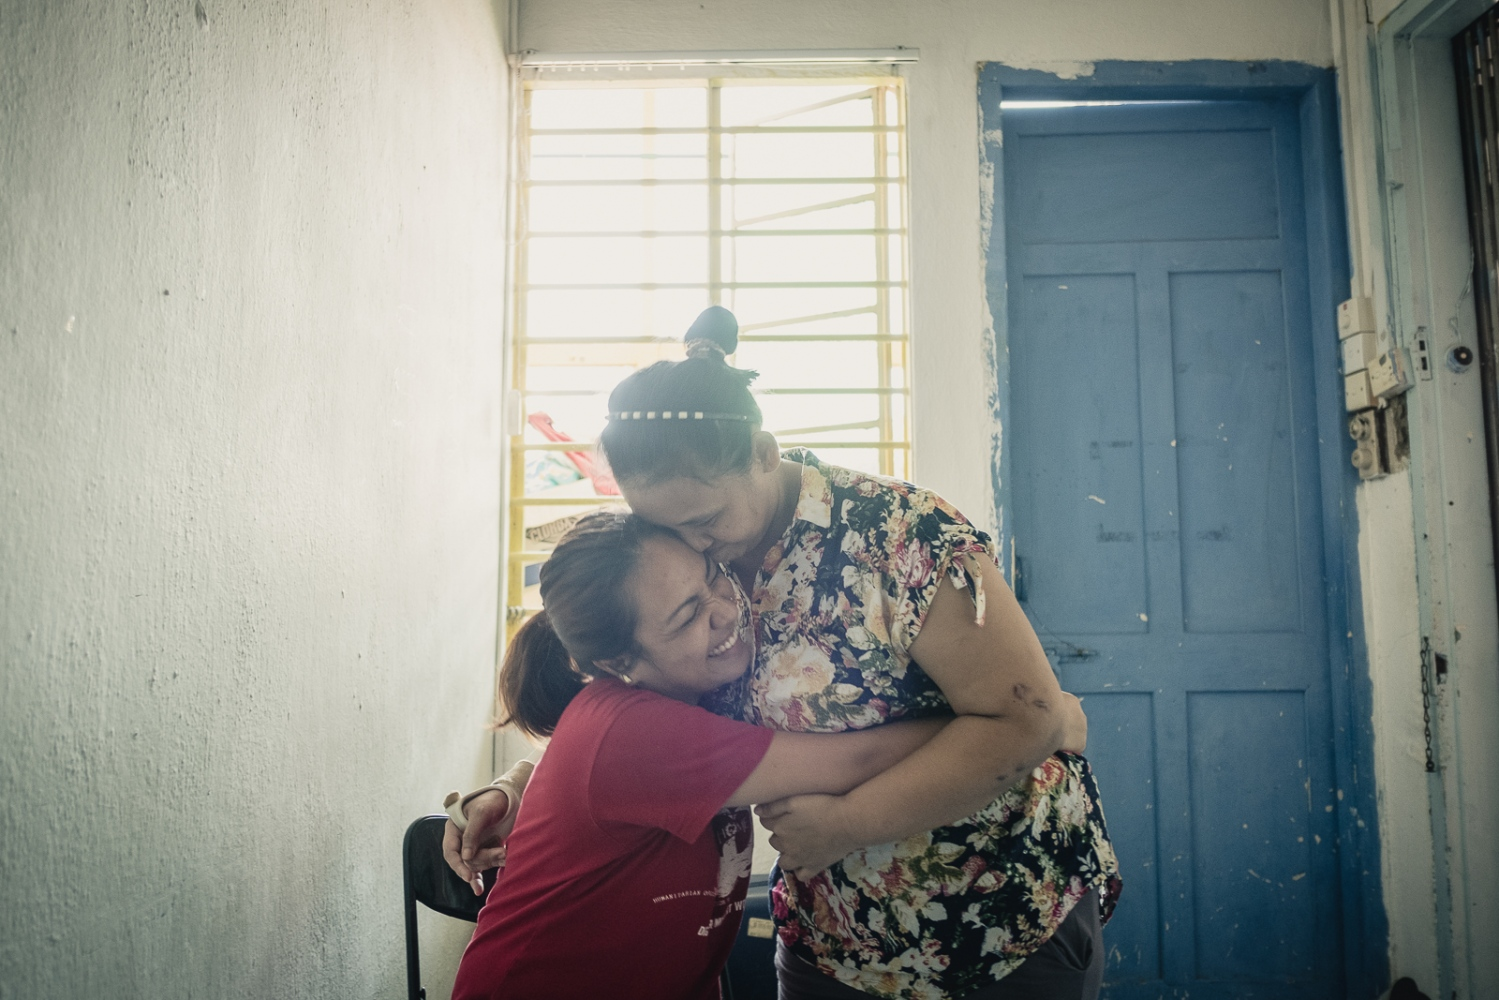 Singapore, 2016. Indonesian Nina Duwi Koriah, 29, is comforted by a friend at the HOME shelter in Singapore. Unhappy with the treatment from her employer after one week she sought help from her agent, who refused to transfer her to a new employer. One week later the agent agreed to take Nina in and brought her out of the employer's house. While housed at the home of her agent Nina reports the agent was displeased that she did not finish her contract and shouted at her. After three days of being locked in the agent's home, Nina opened a window with the intention to call for help or try and escape. She says she cannot remember what happened next but she woke up in the hospital. She had fallen from the third floor and broken her left elbow, right arm and wrist and right leg. She spent the rest of her time in Singapore under the care of local NGO, HOME. The Humanitarian Organisation for Migration Economics (HOME) is an organisation that provides direct assistance to men and women migrants and victims of human trafficking and forced labour.